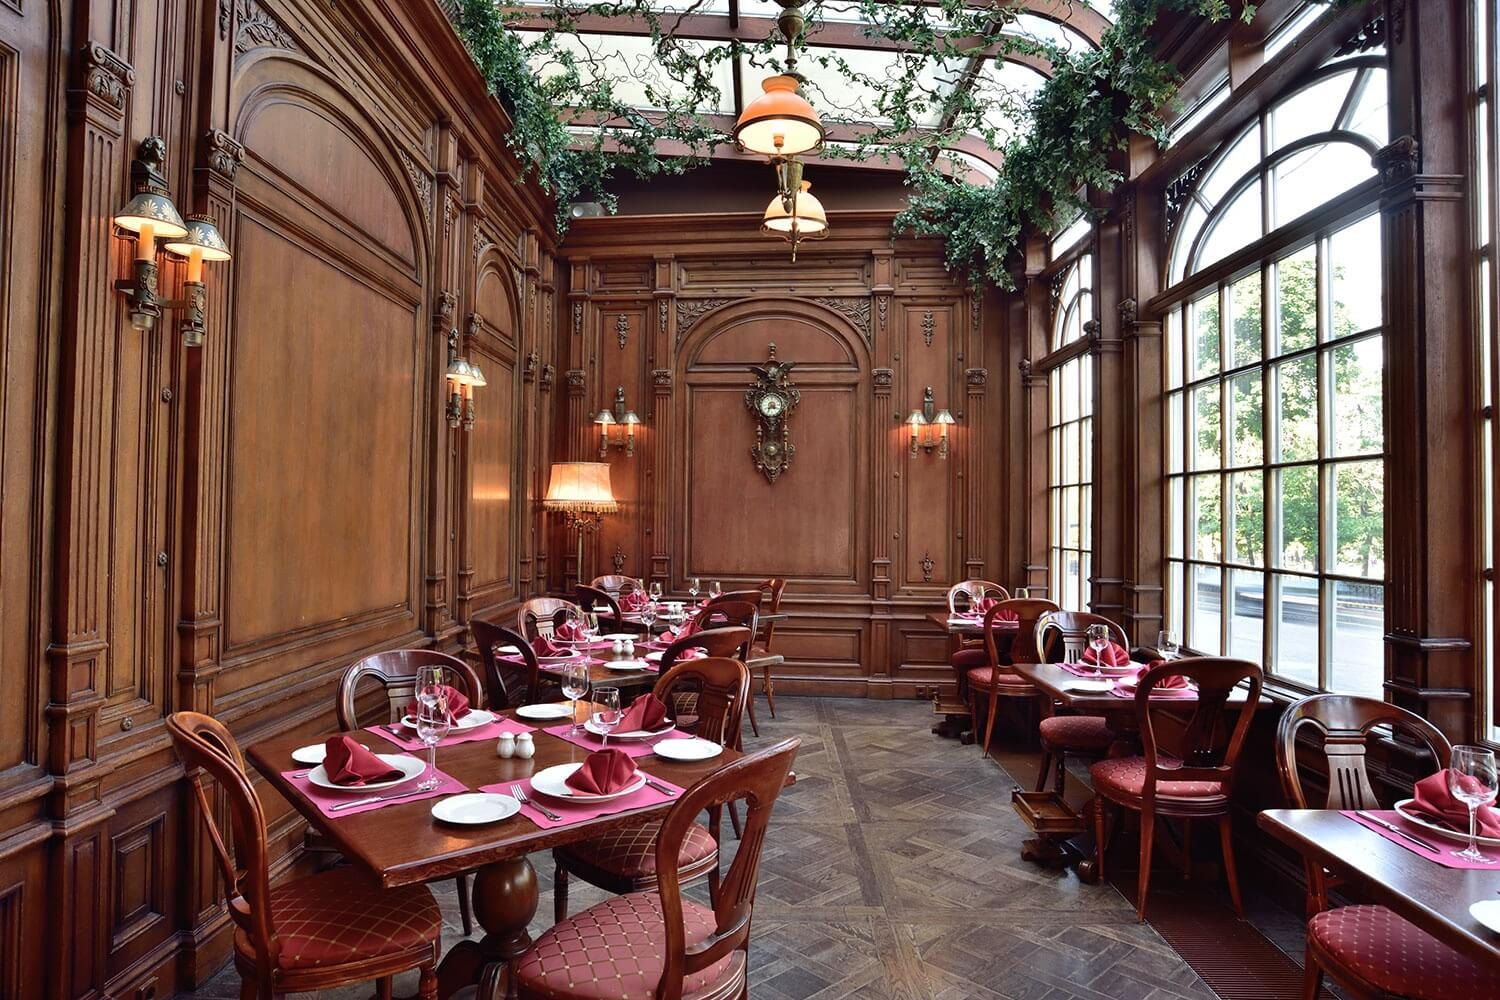 Café Pushkin in Moscow — Café Pushkin: A Dinner Date with History